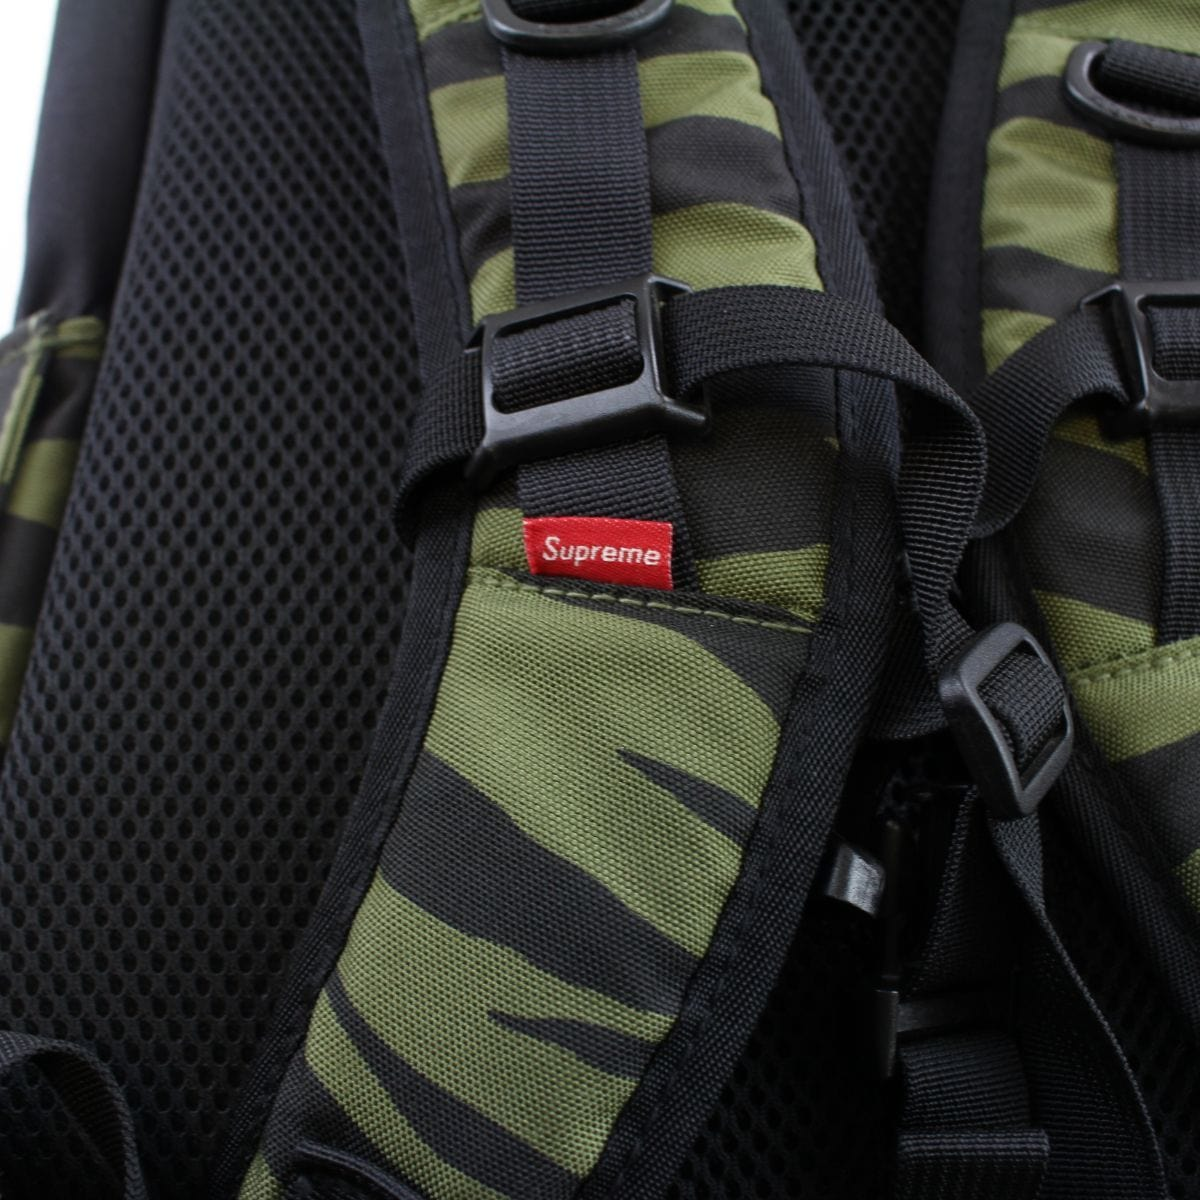 supreme tiger camo cross xxx backpack 2011 - SaruGeneral